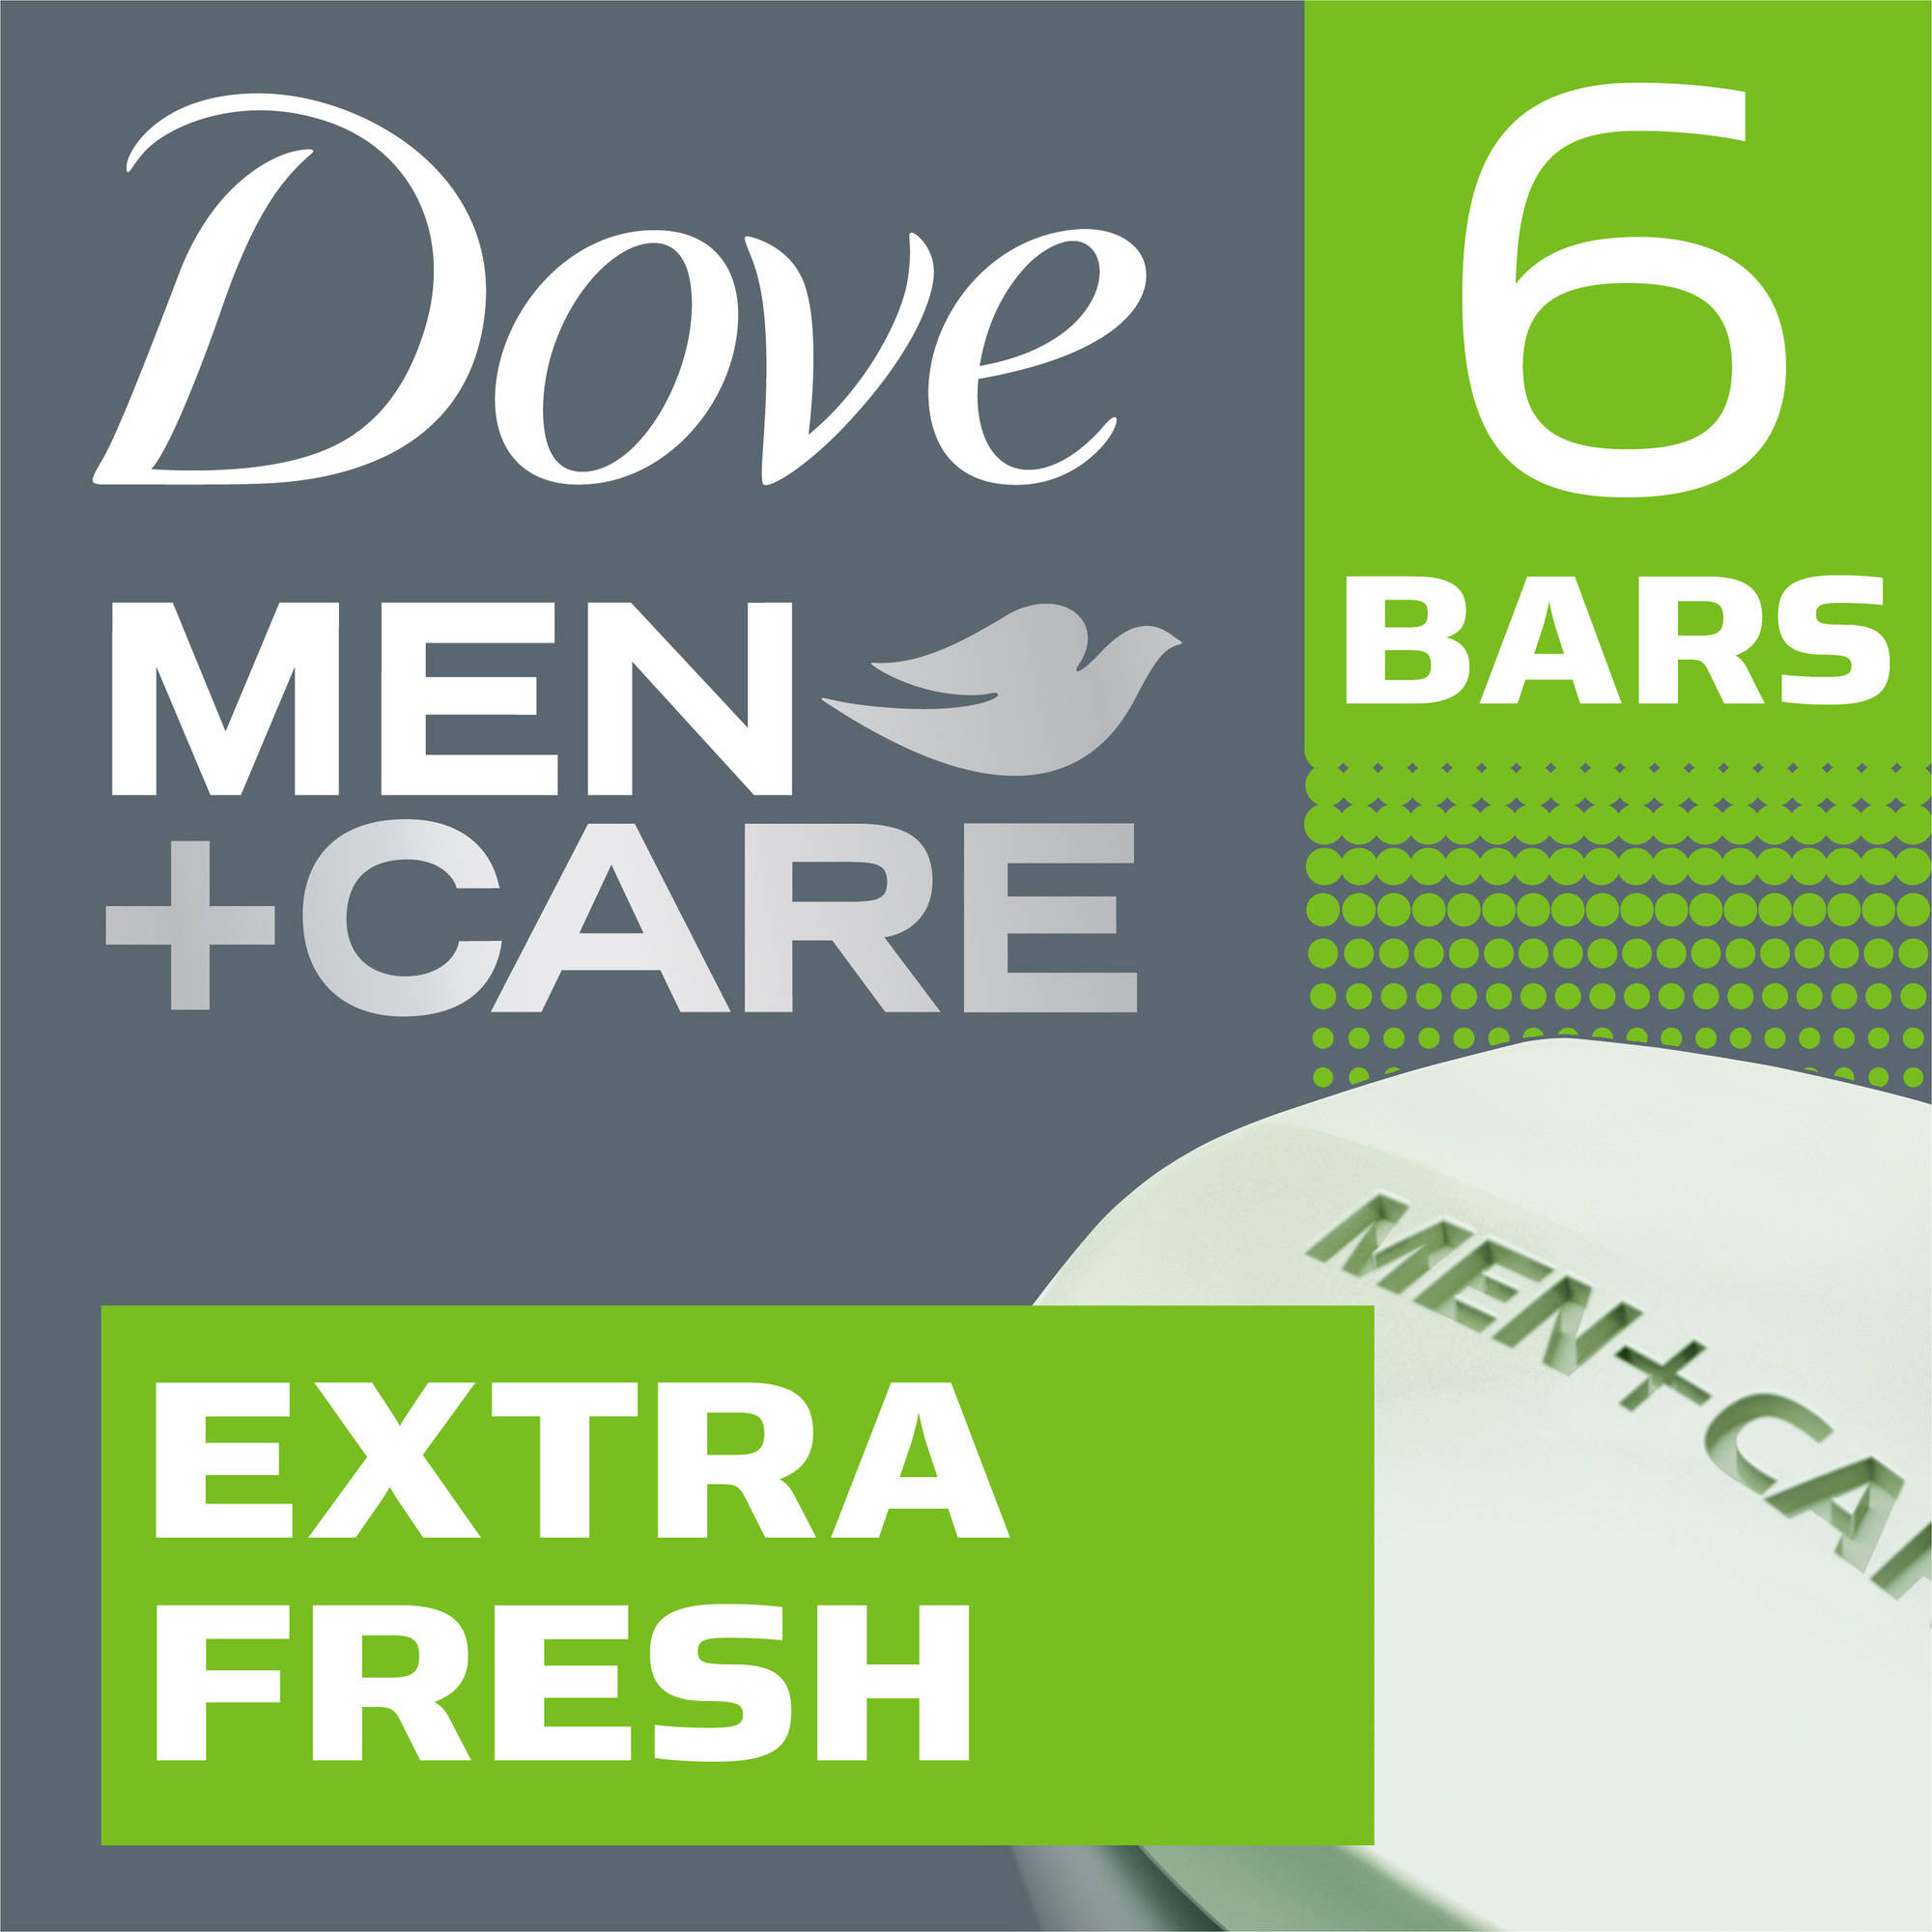 Dove Men+Care Extra Fresh Body and Face Bar, 4 oz, 6 Bar